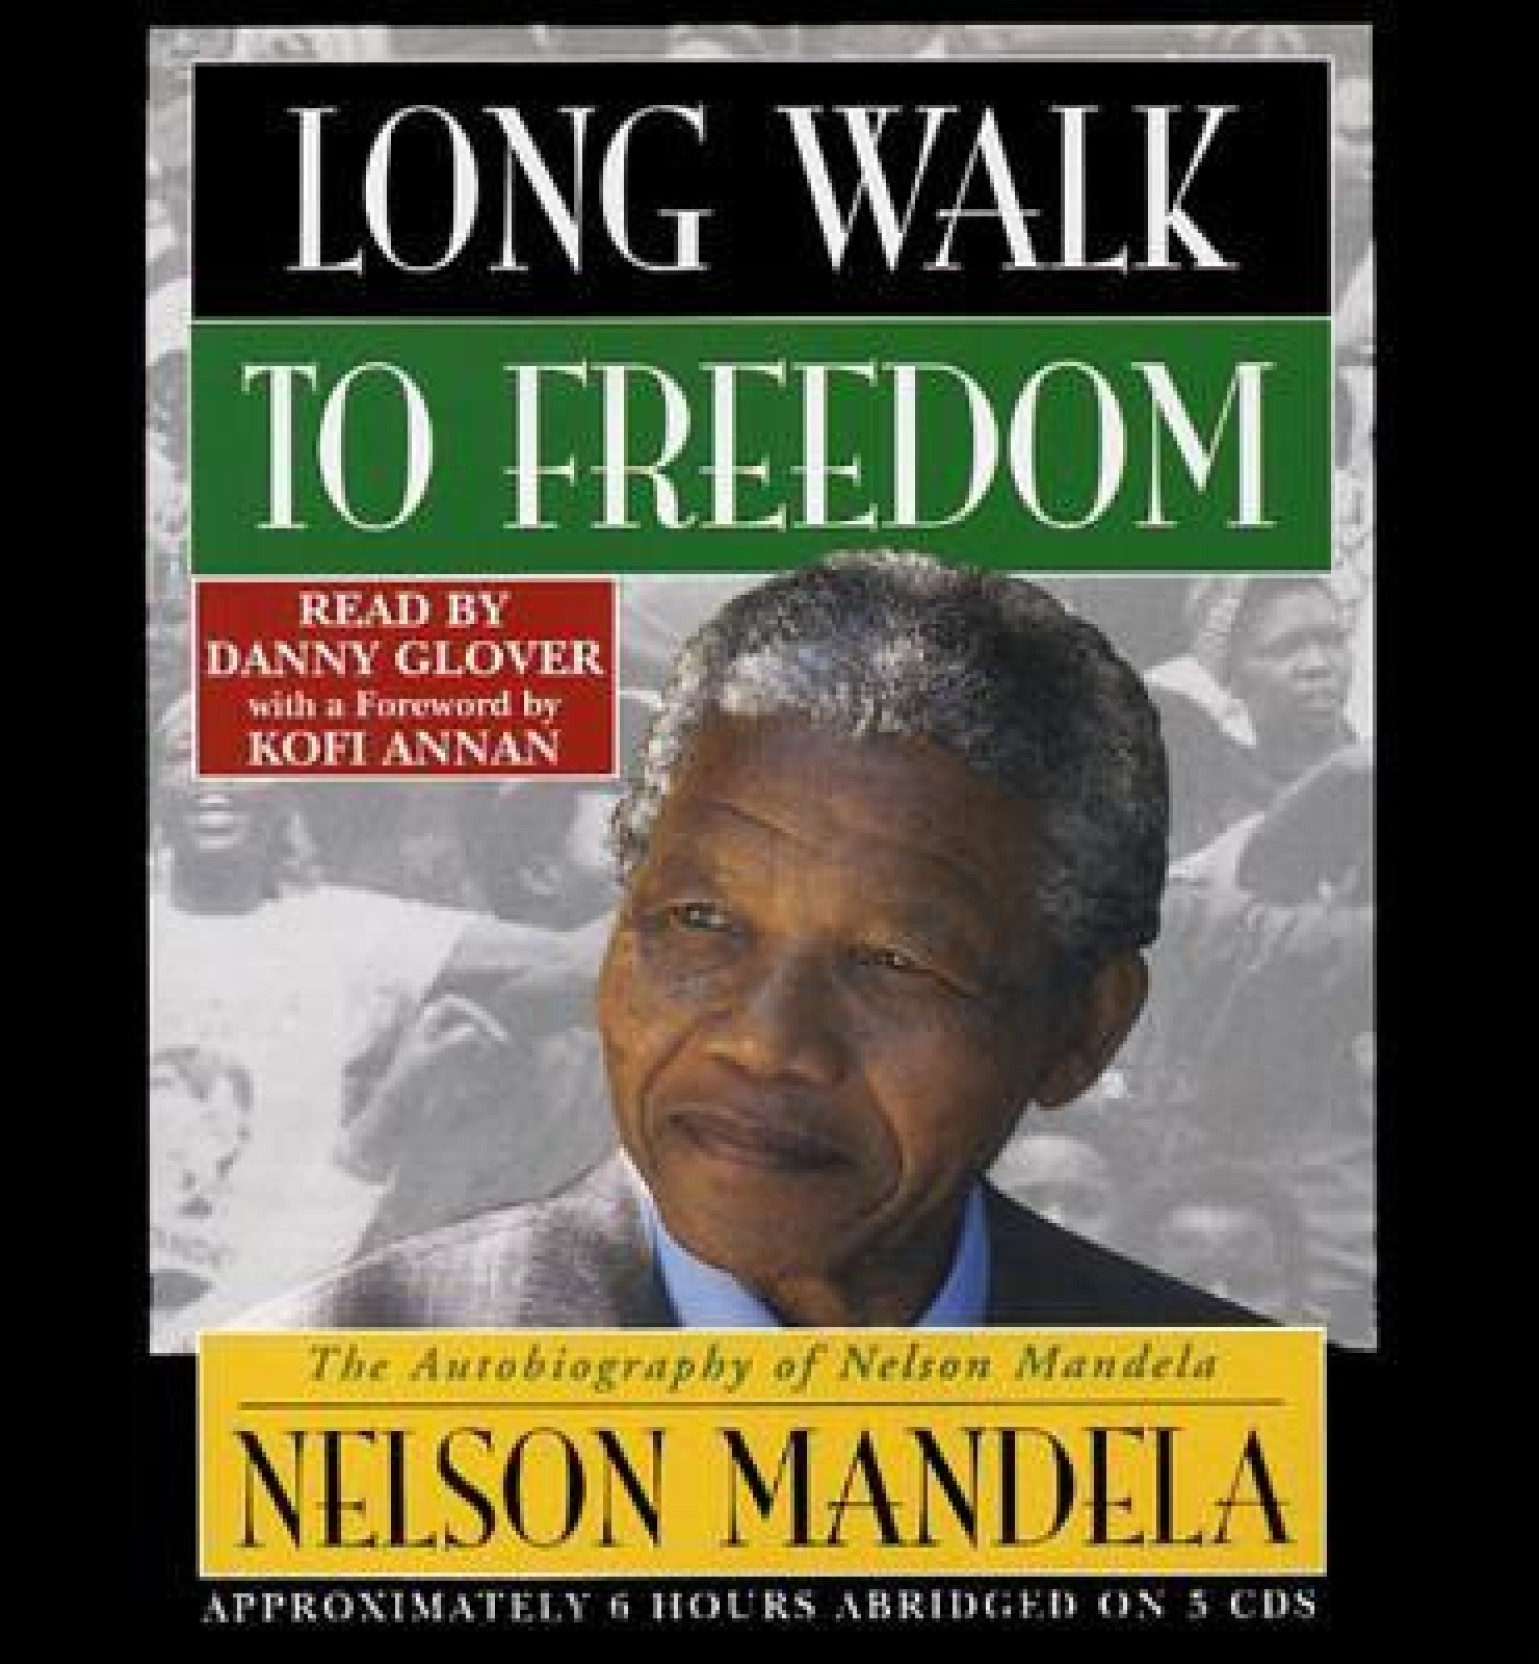 who wrote the book long walk to freedom